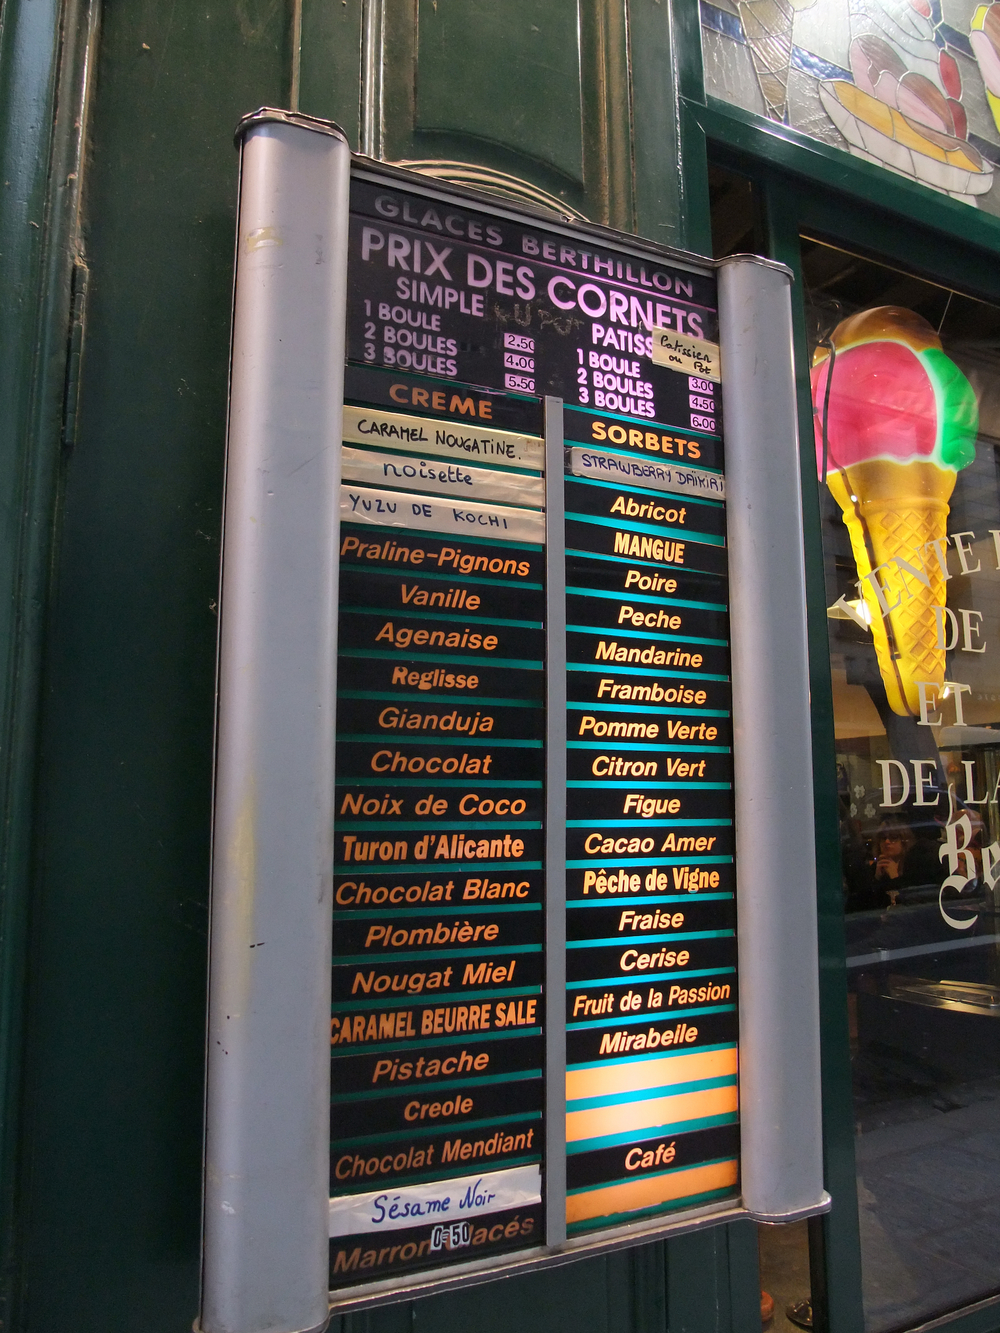 Ice cream flavors at  Maison Berthillon